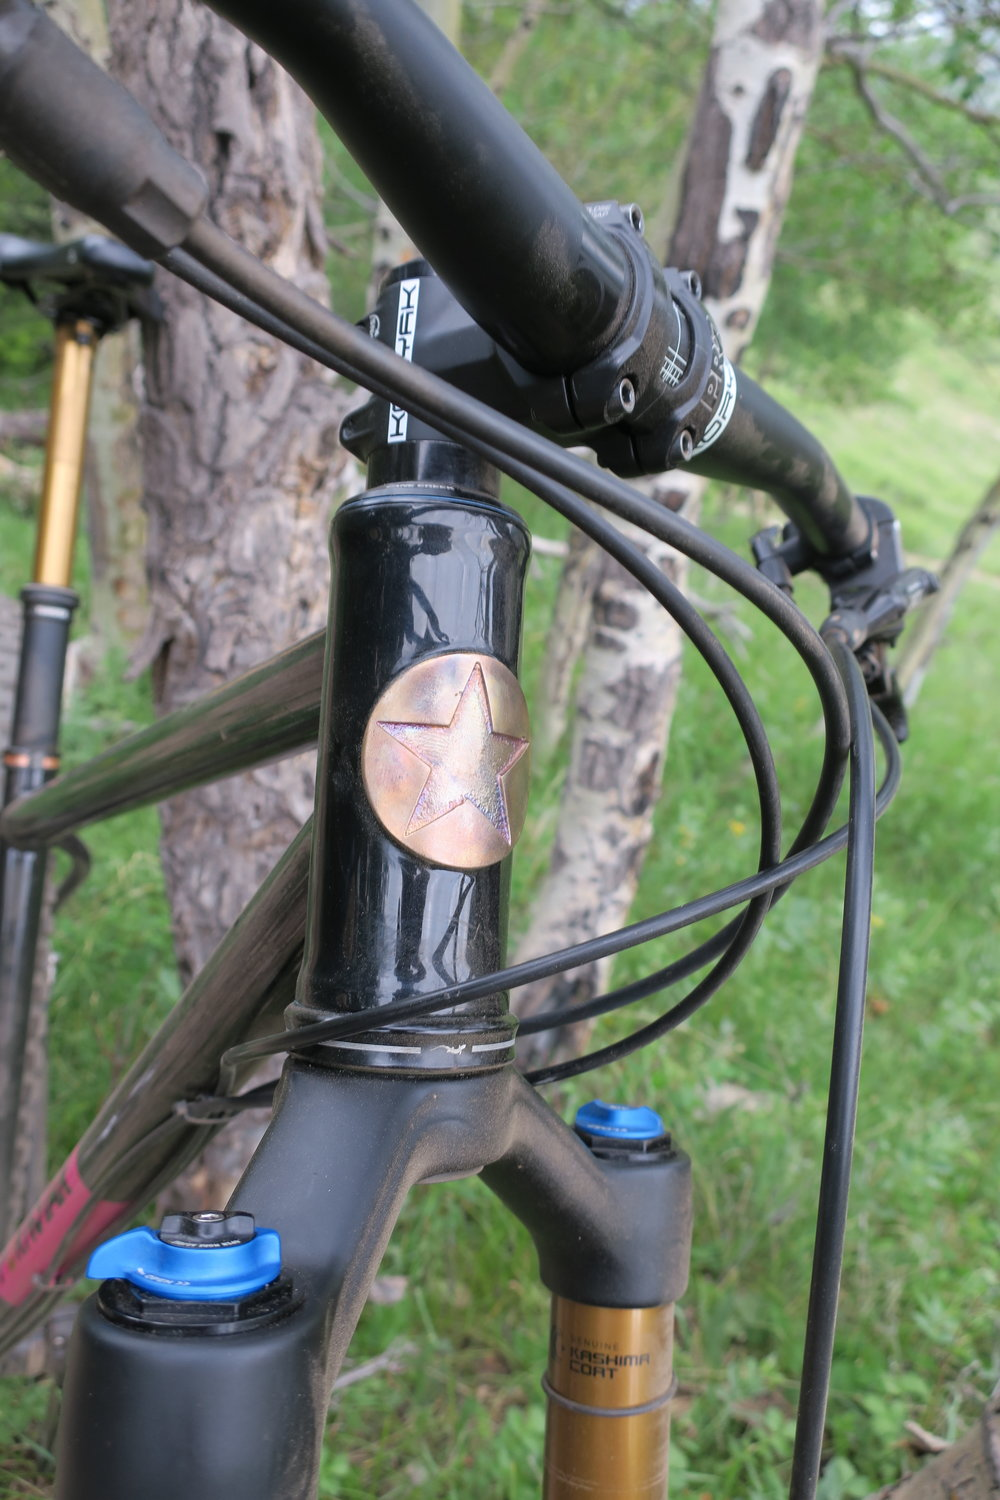 Head tube badge detail